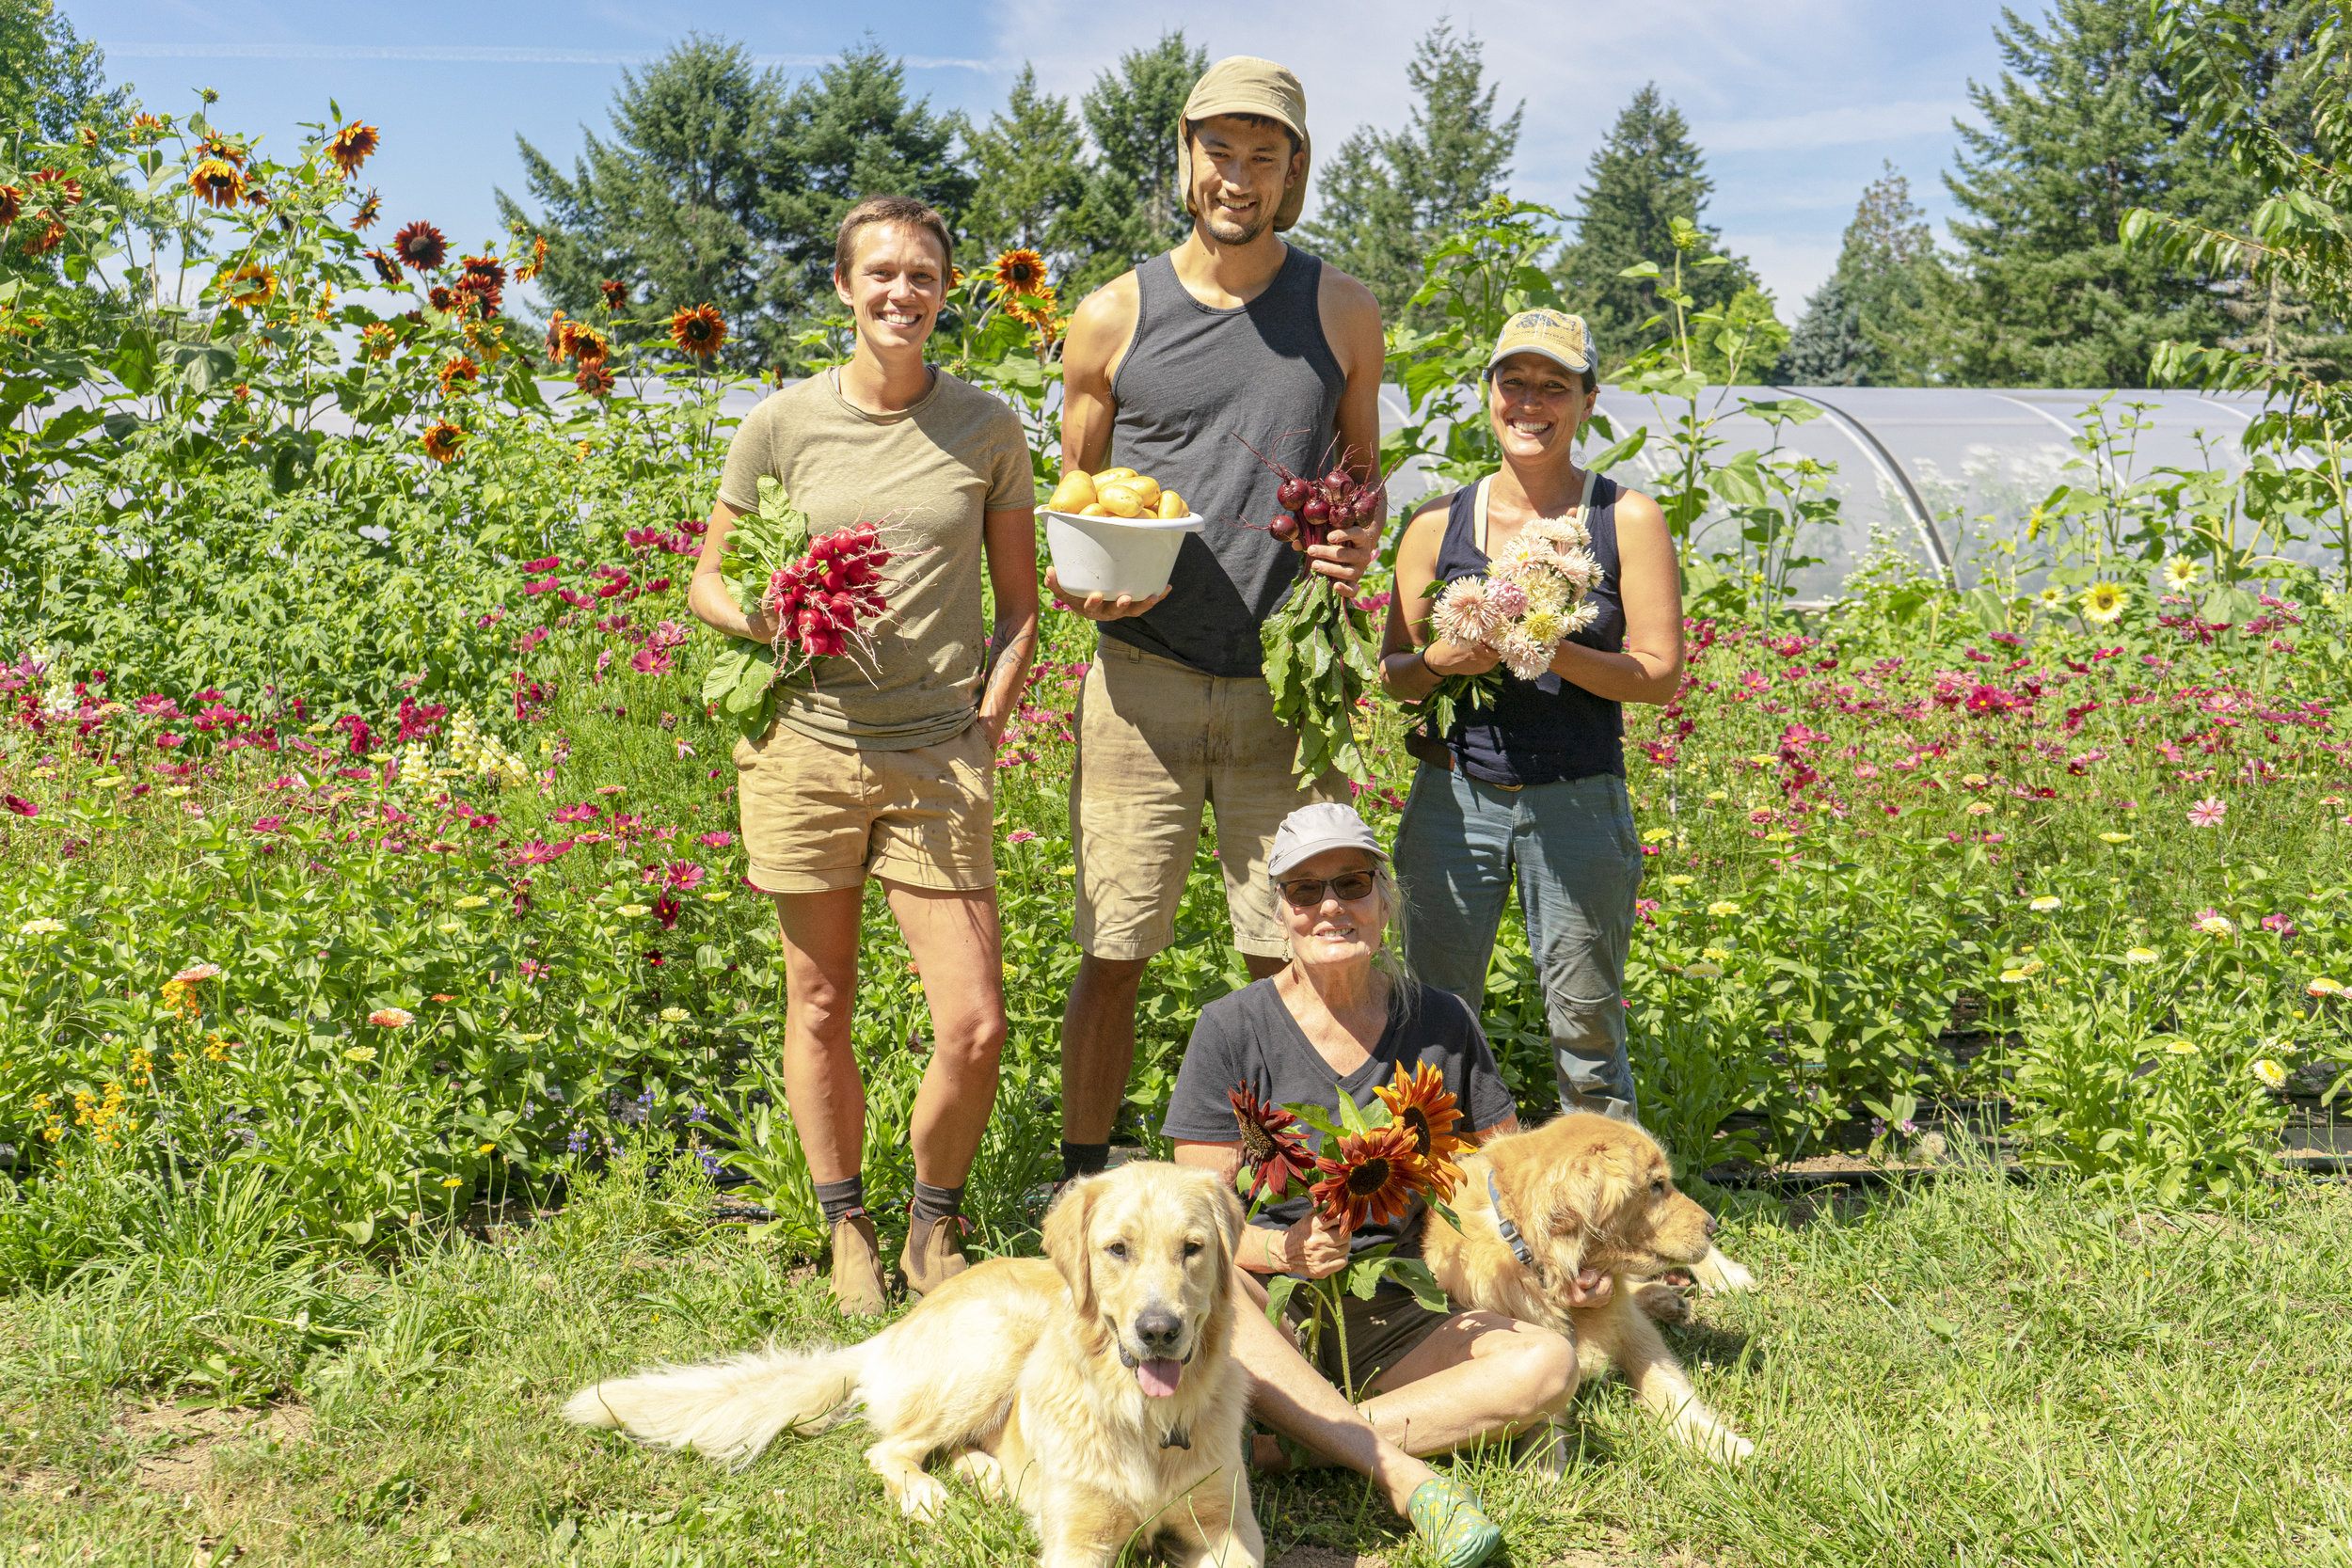 Brindley, Spencer, Jennie, and Pam posing with fresh goods from their farm. (Left to Right)